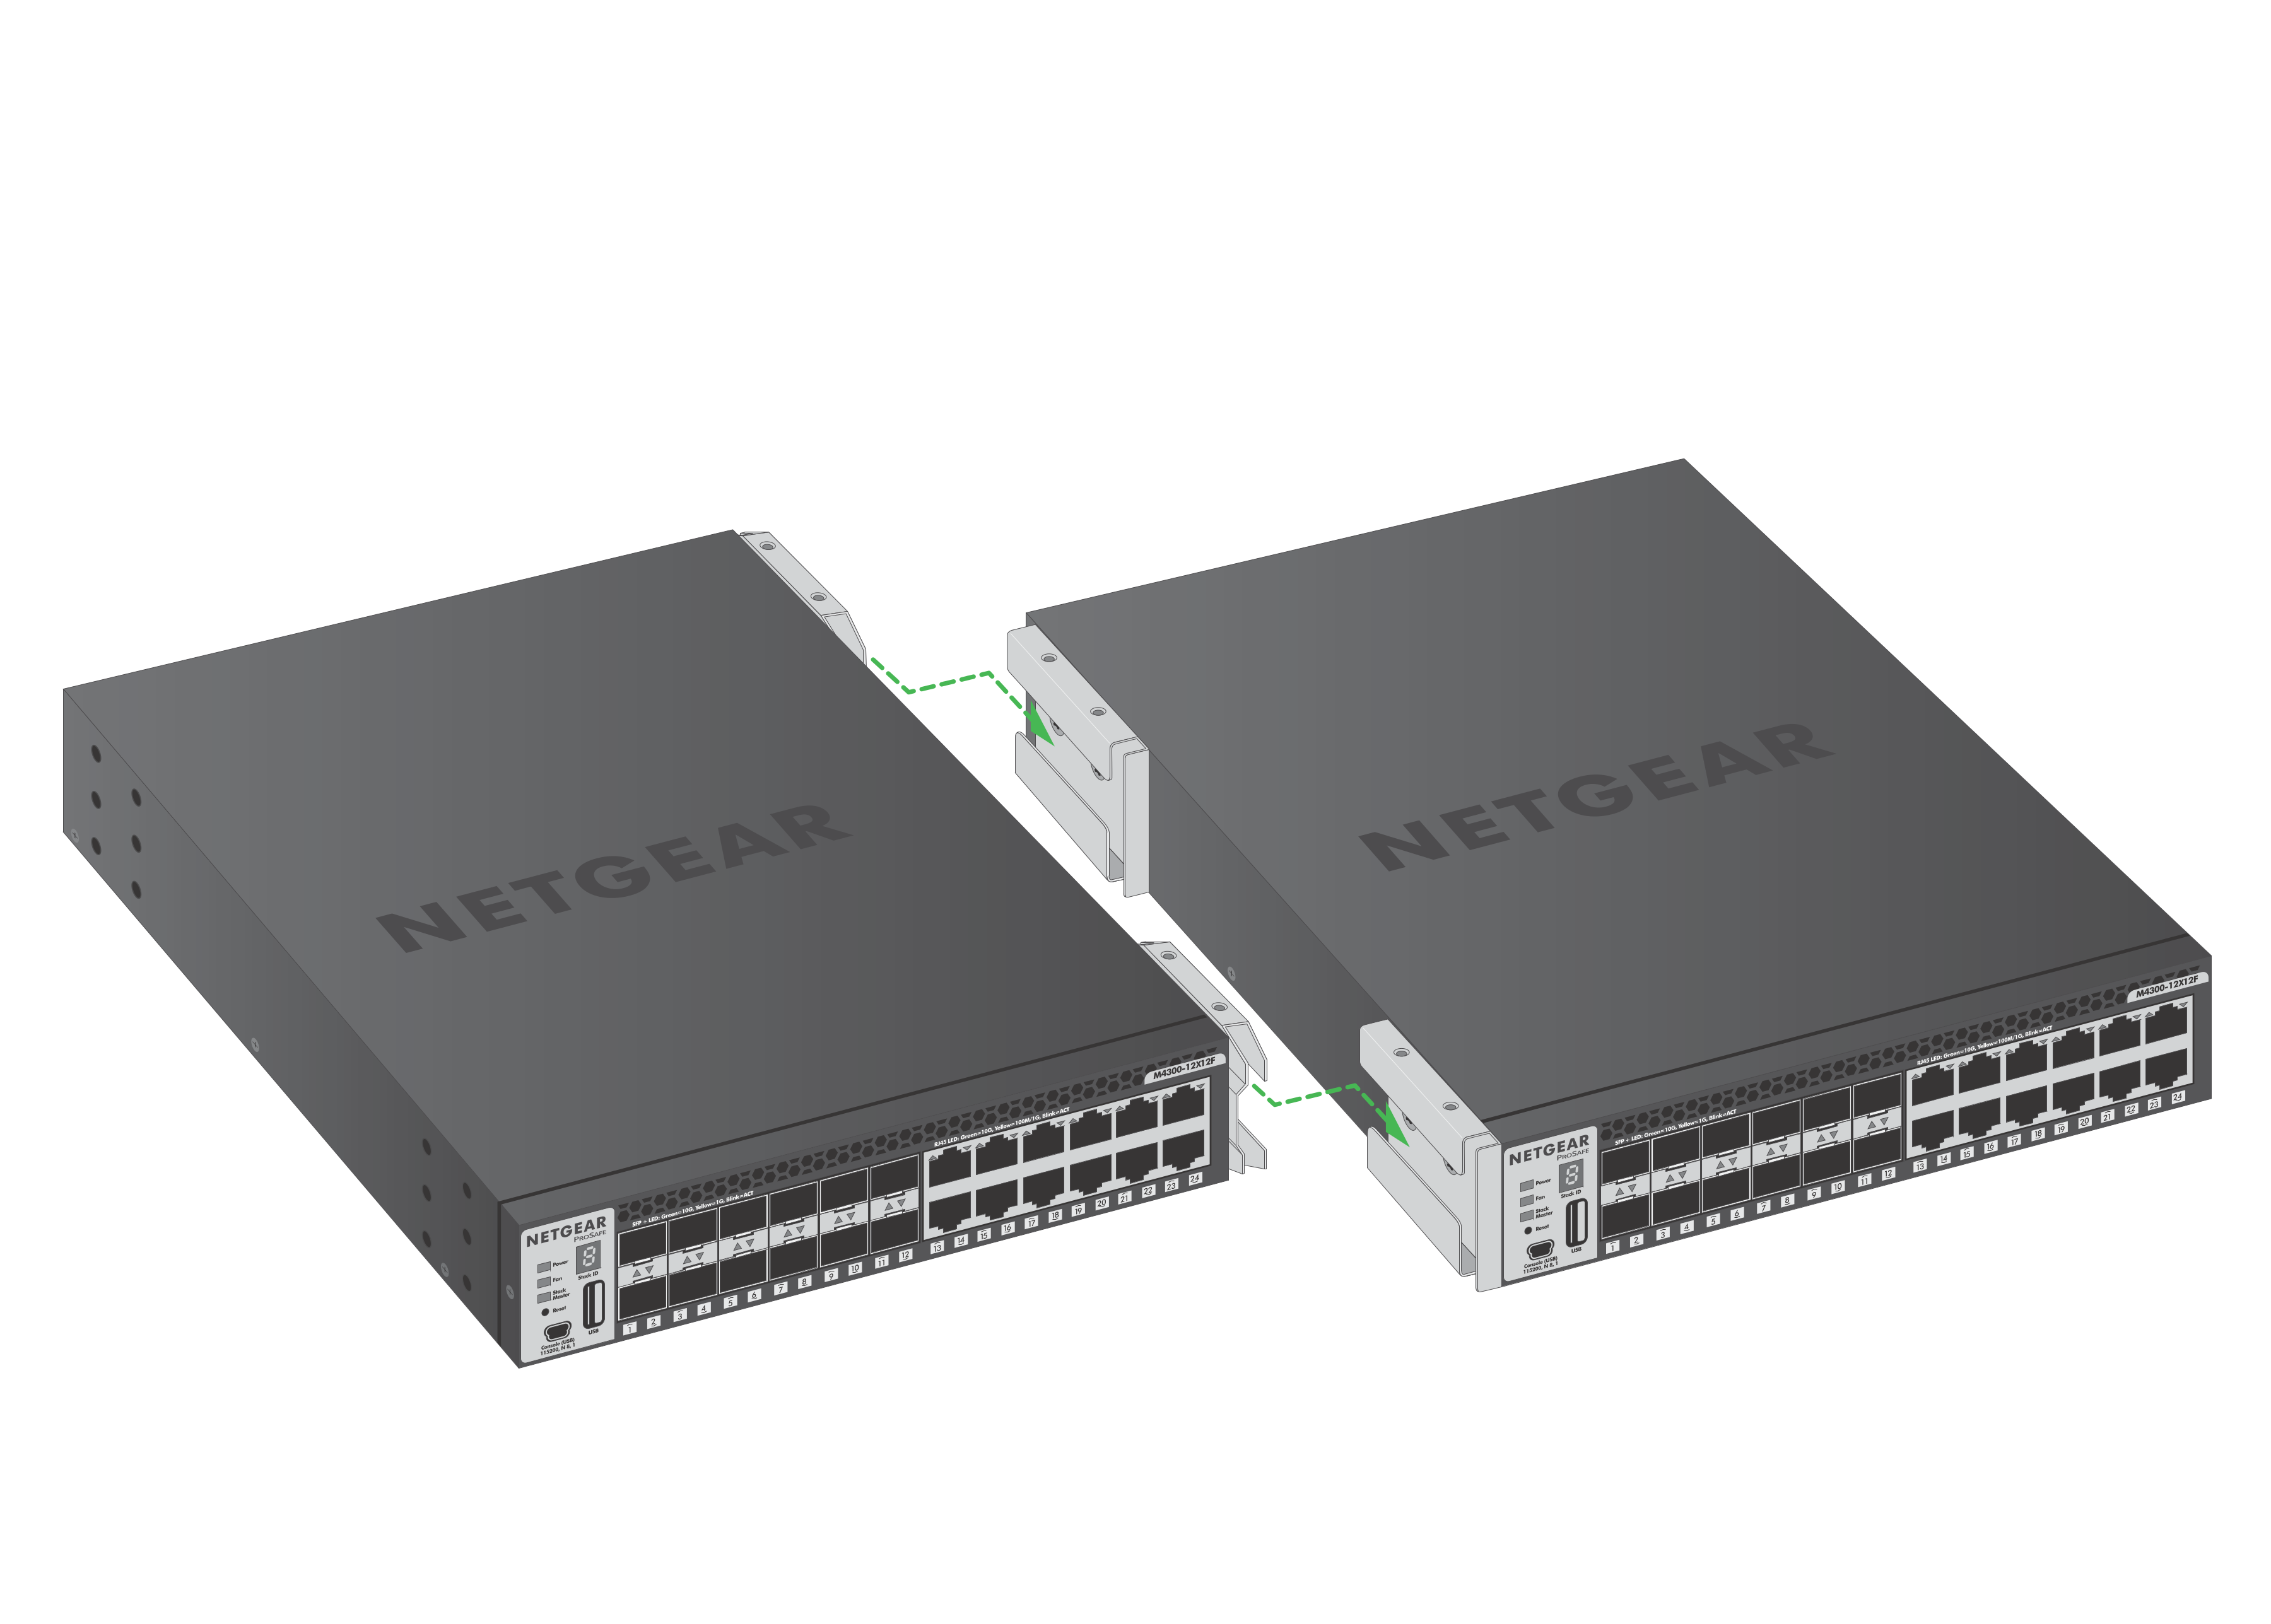 M4300 Switches Gestionados Switches Productos